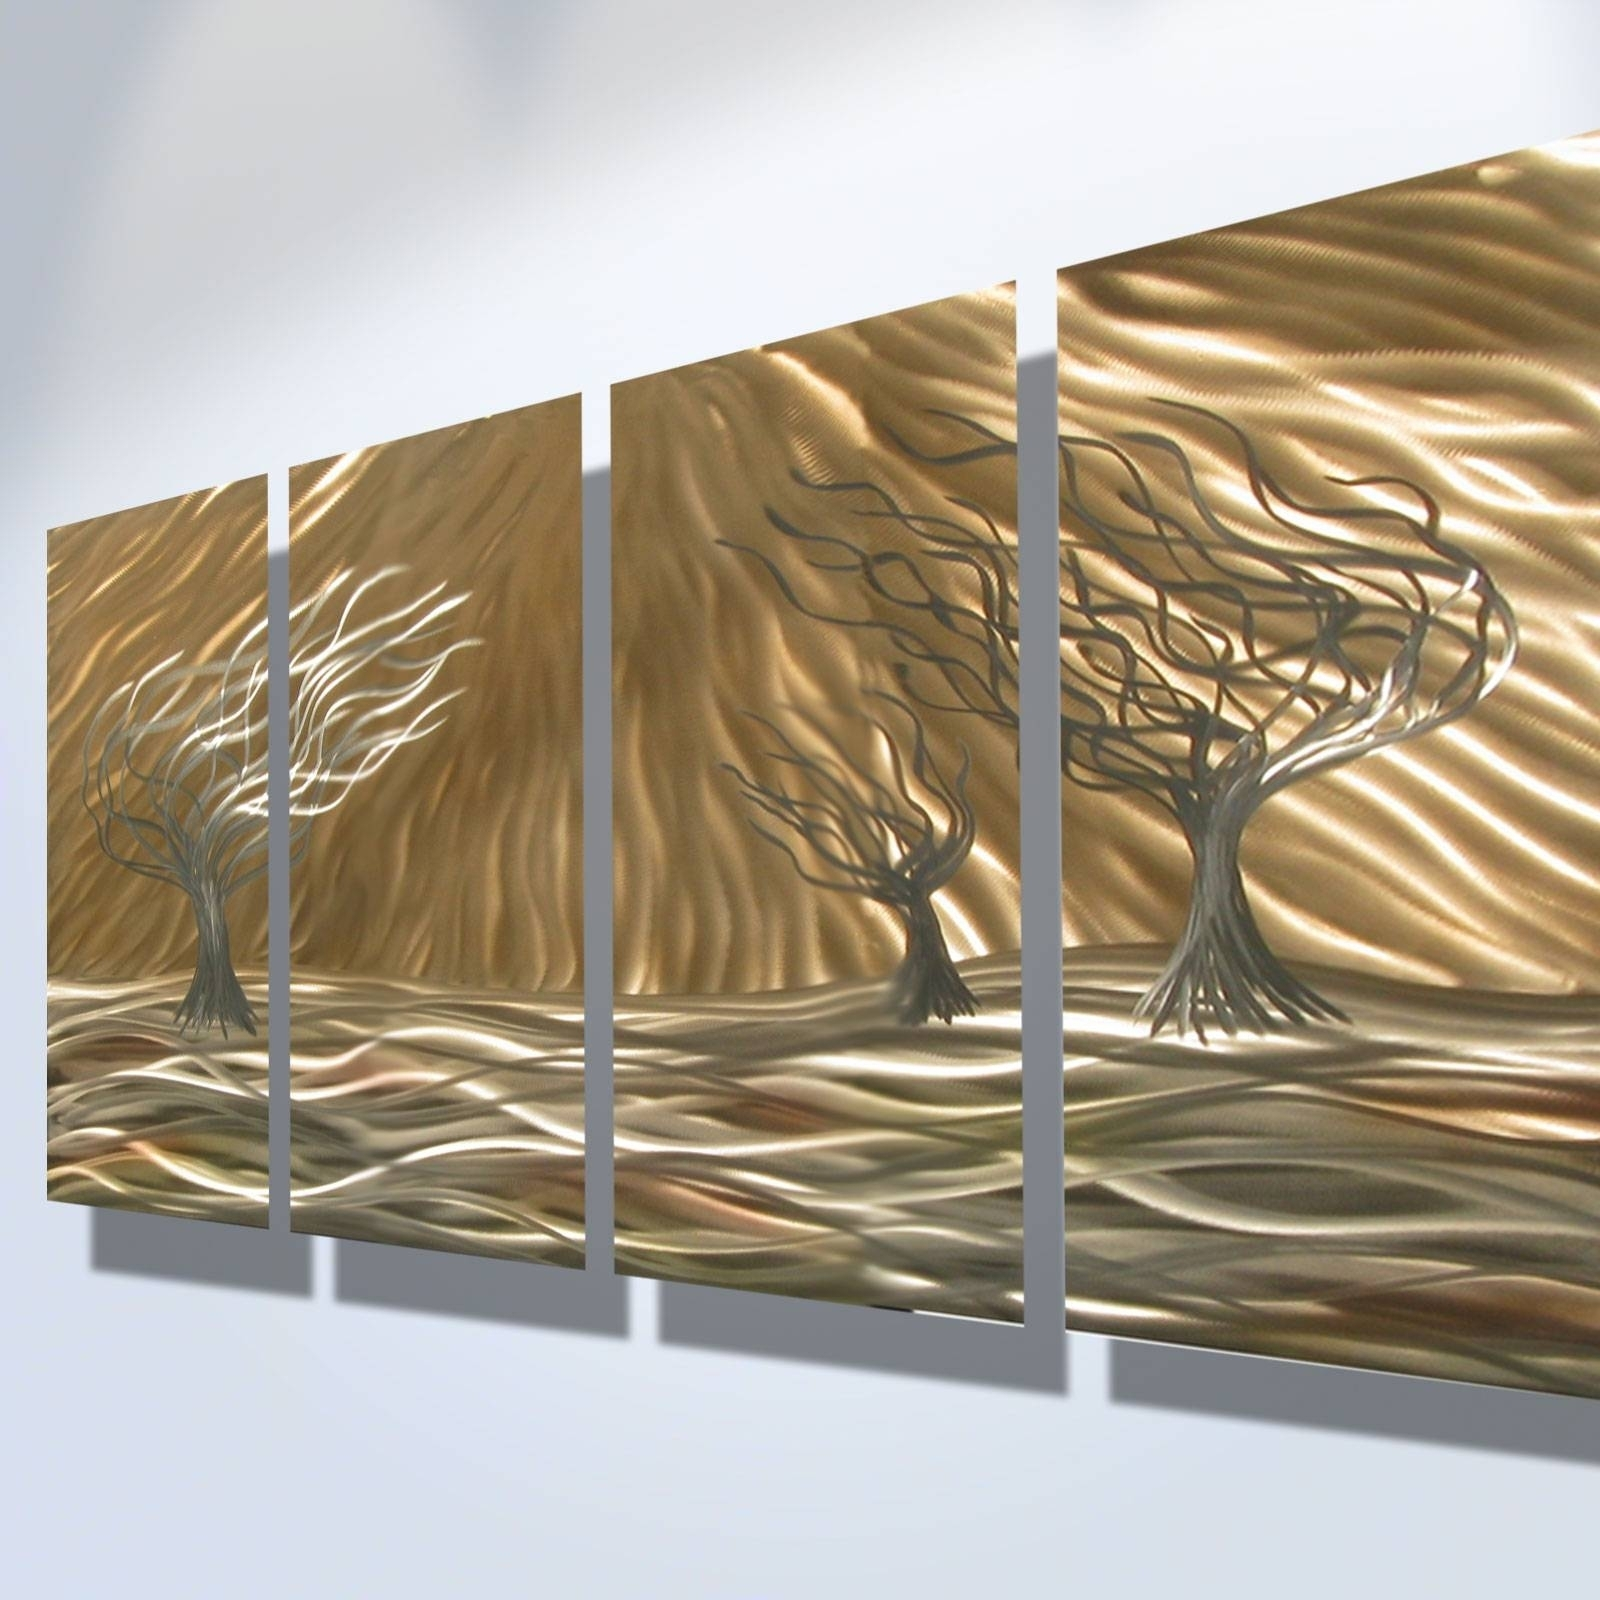 2018 Popular Modern Abstract Metal Wall Art Sculpture Intended For Latest Abstract Metal Sculpture Wall Art (View 2 of 20)